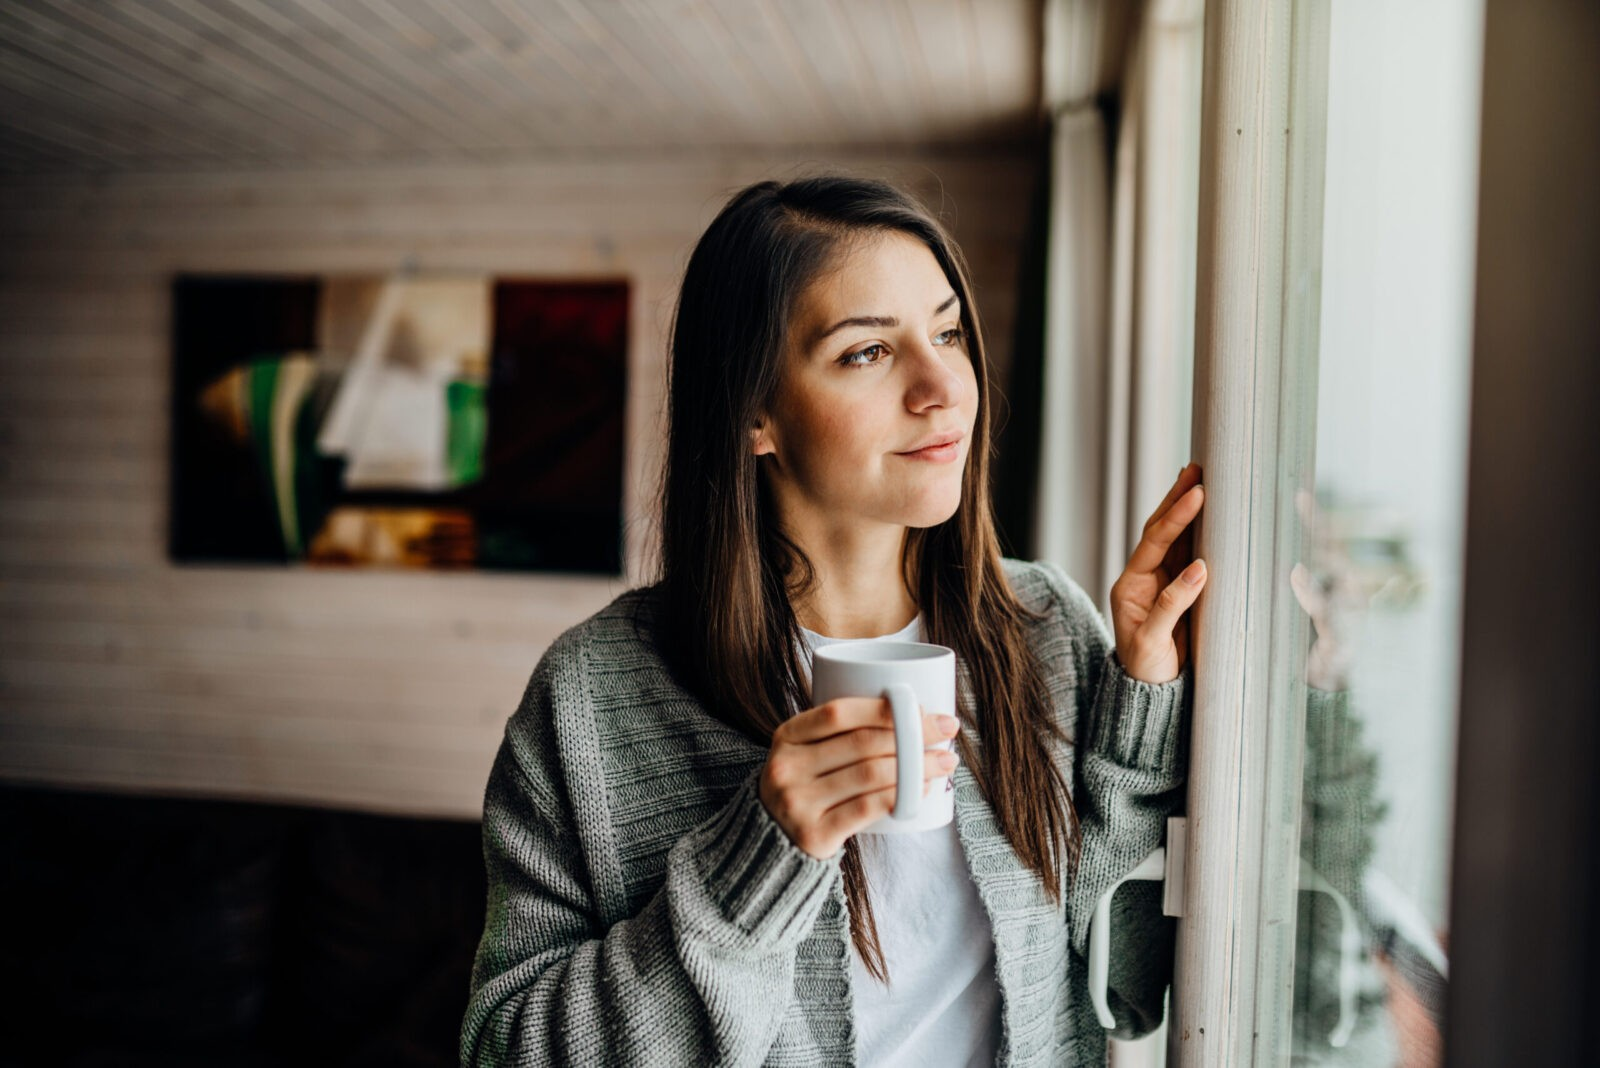 Girl with mug stares thoughtfully out of a window